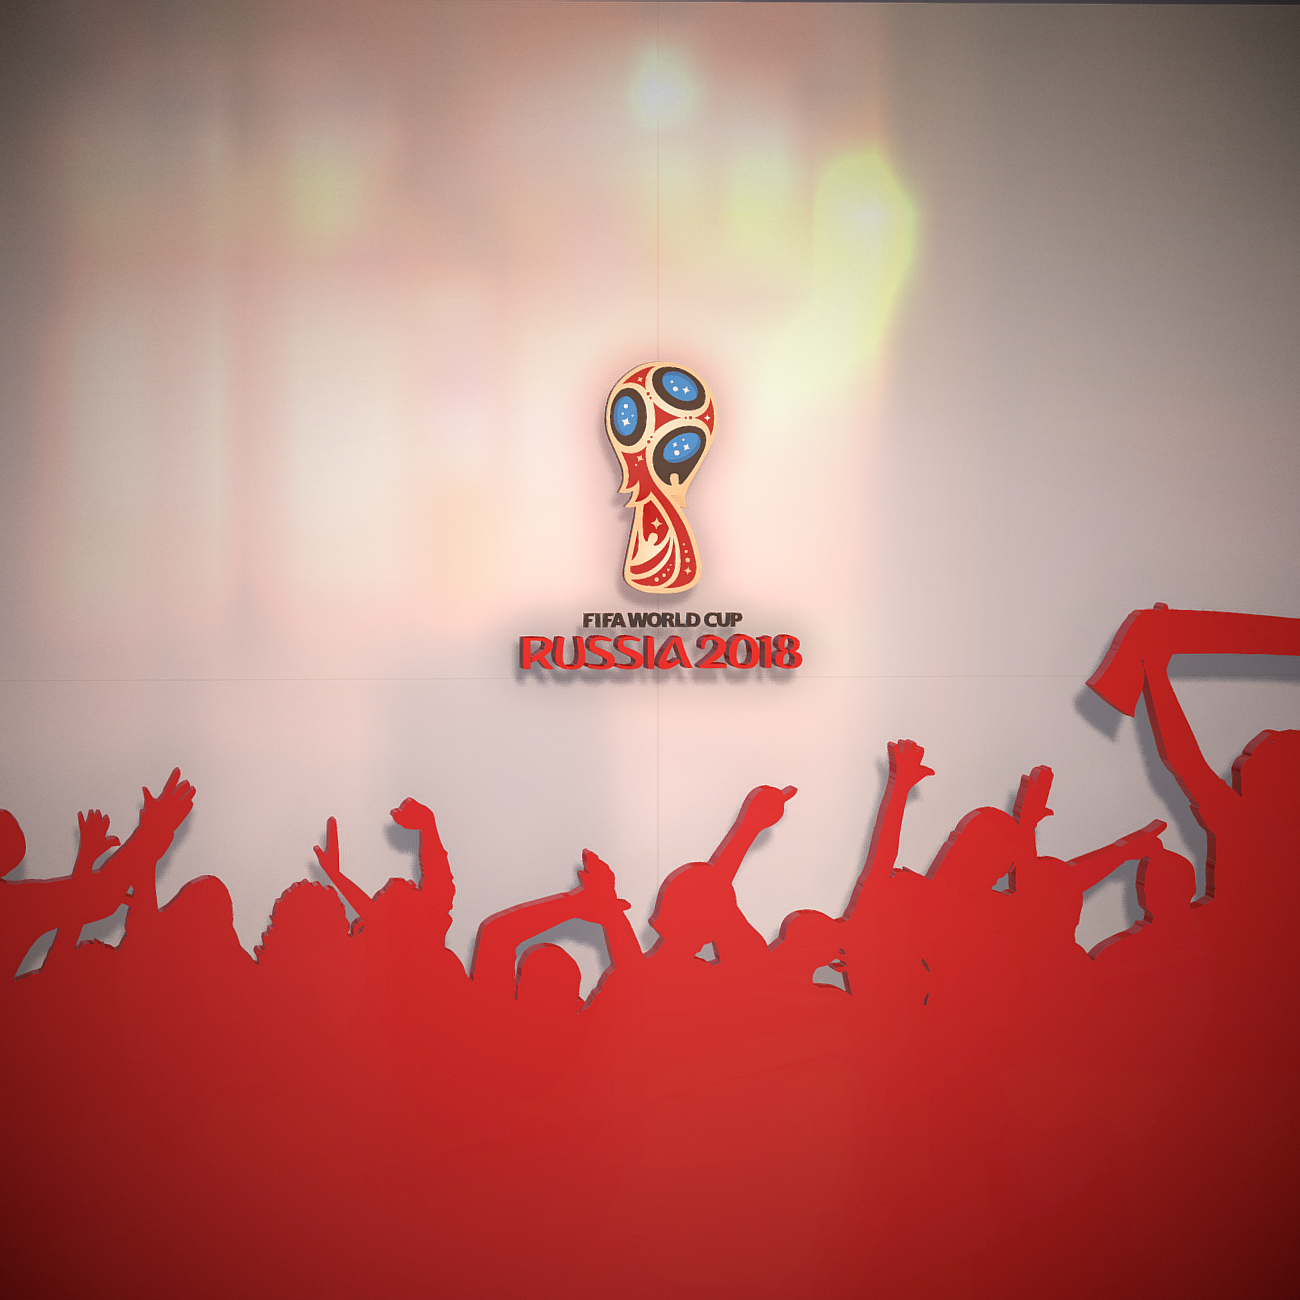 fifa world cup russia 2018 slyle 3d model 3ds max fbx ma mb obj 269743